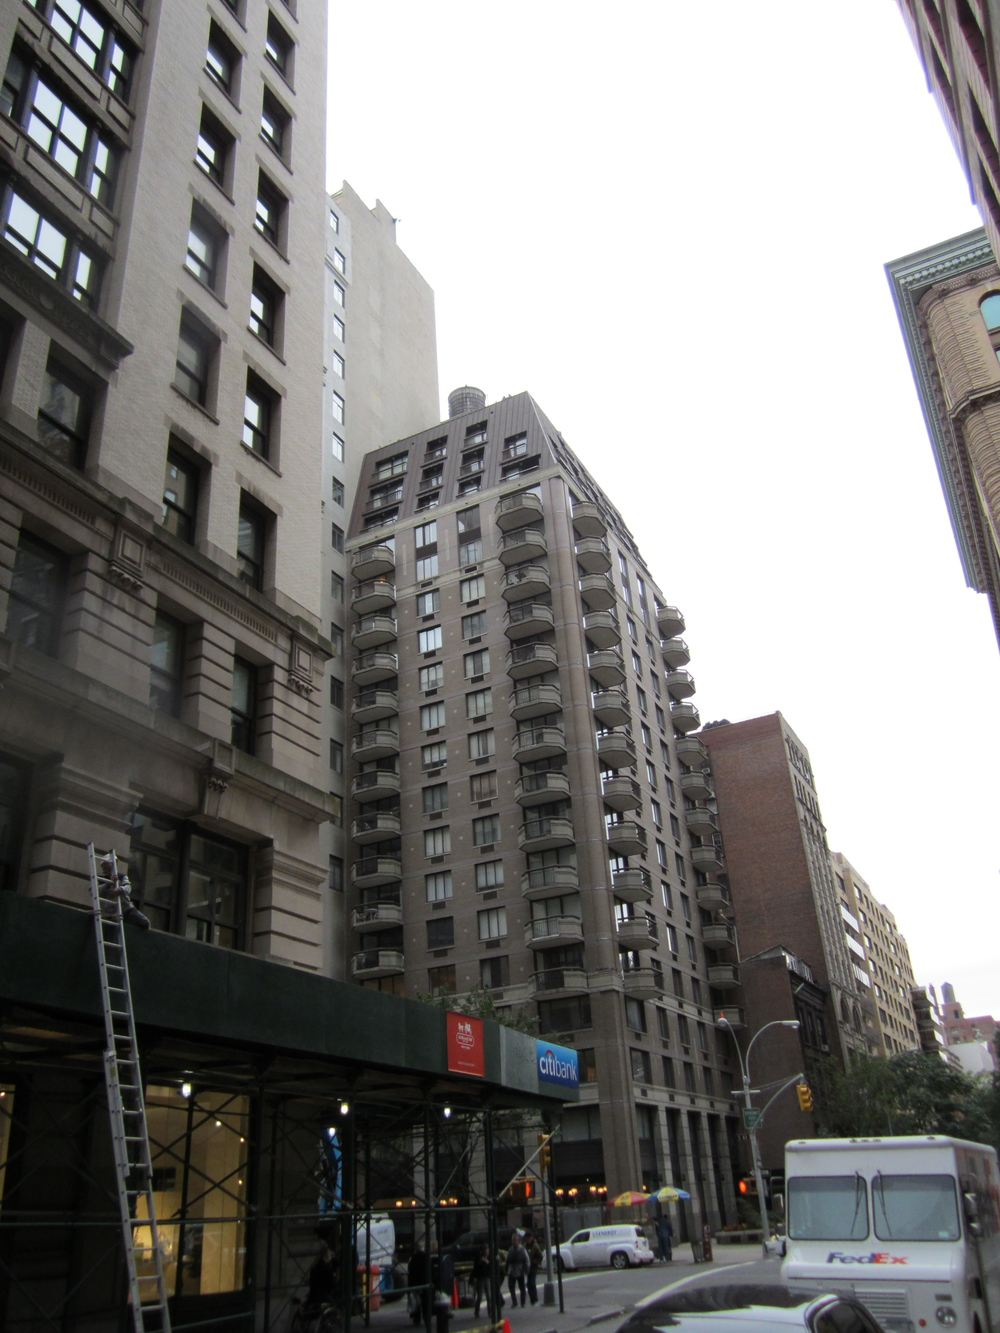 108 FIFTH - EAST ELEVATION FROM 16TH STREET EAST.jpg